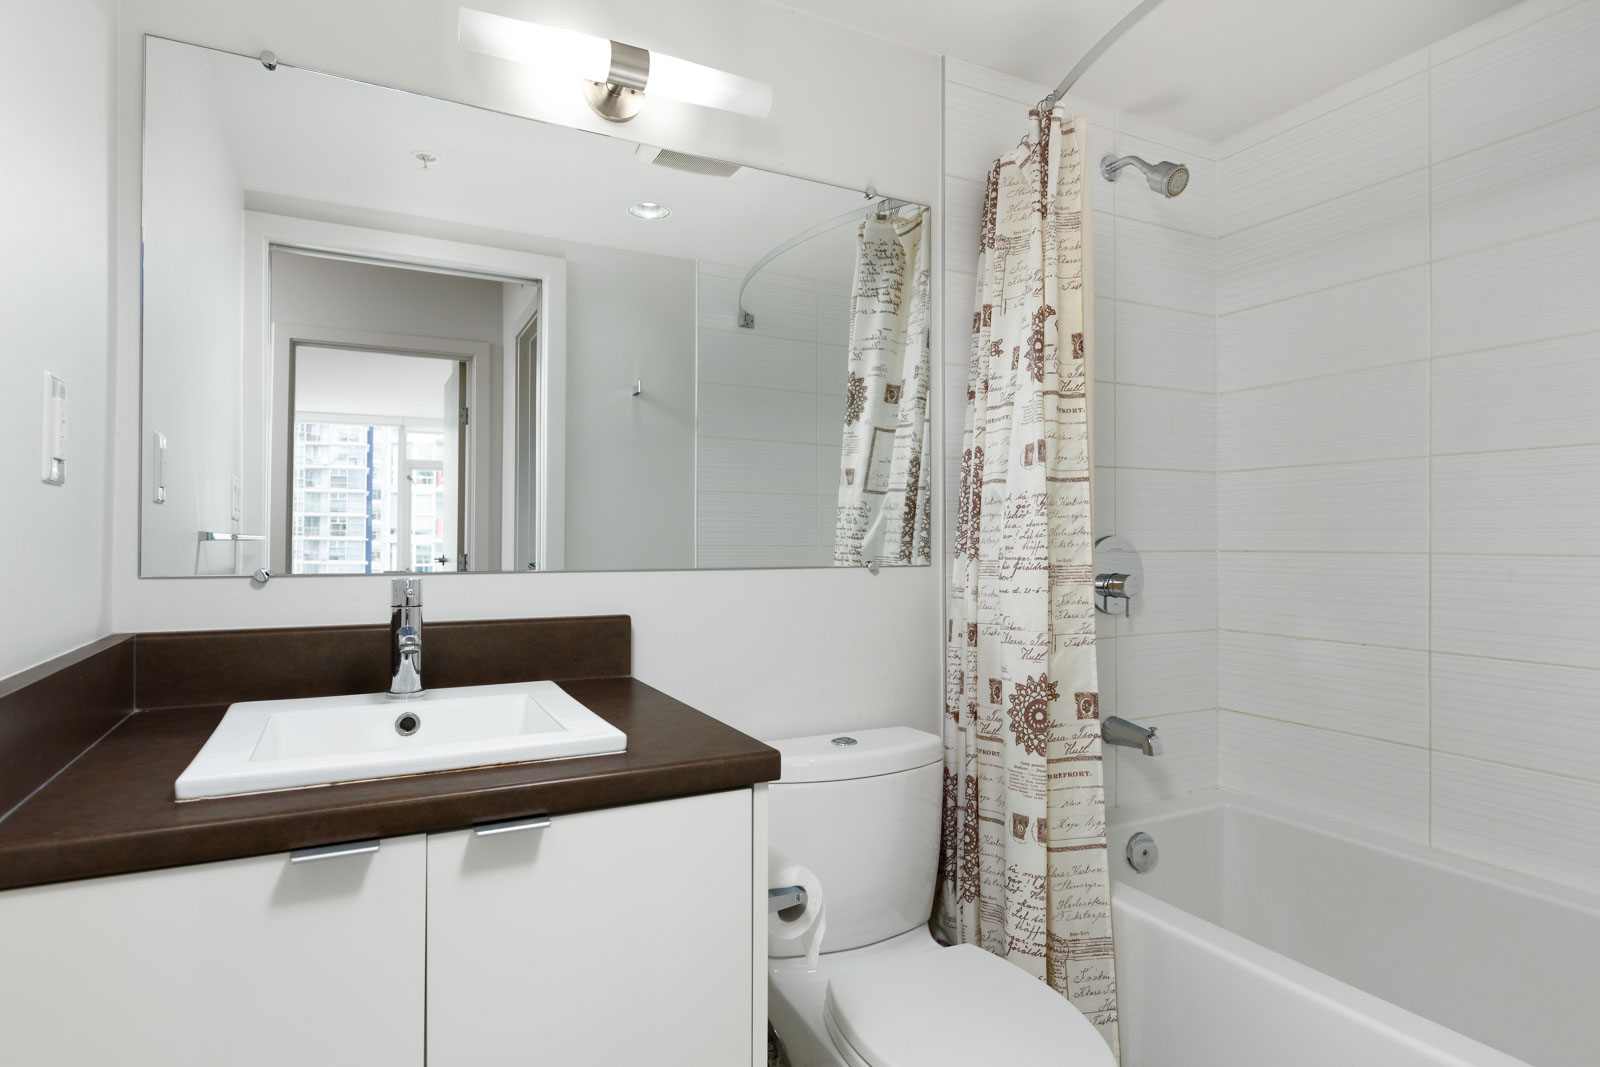 Bathroom at furnished Downtown Vancouver condo managed by Birds Nest Properties.